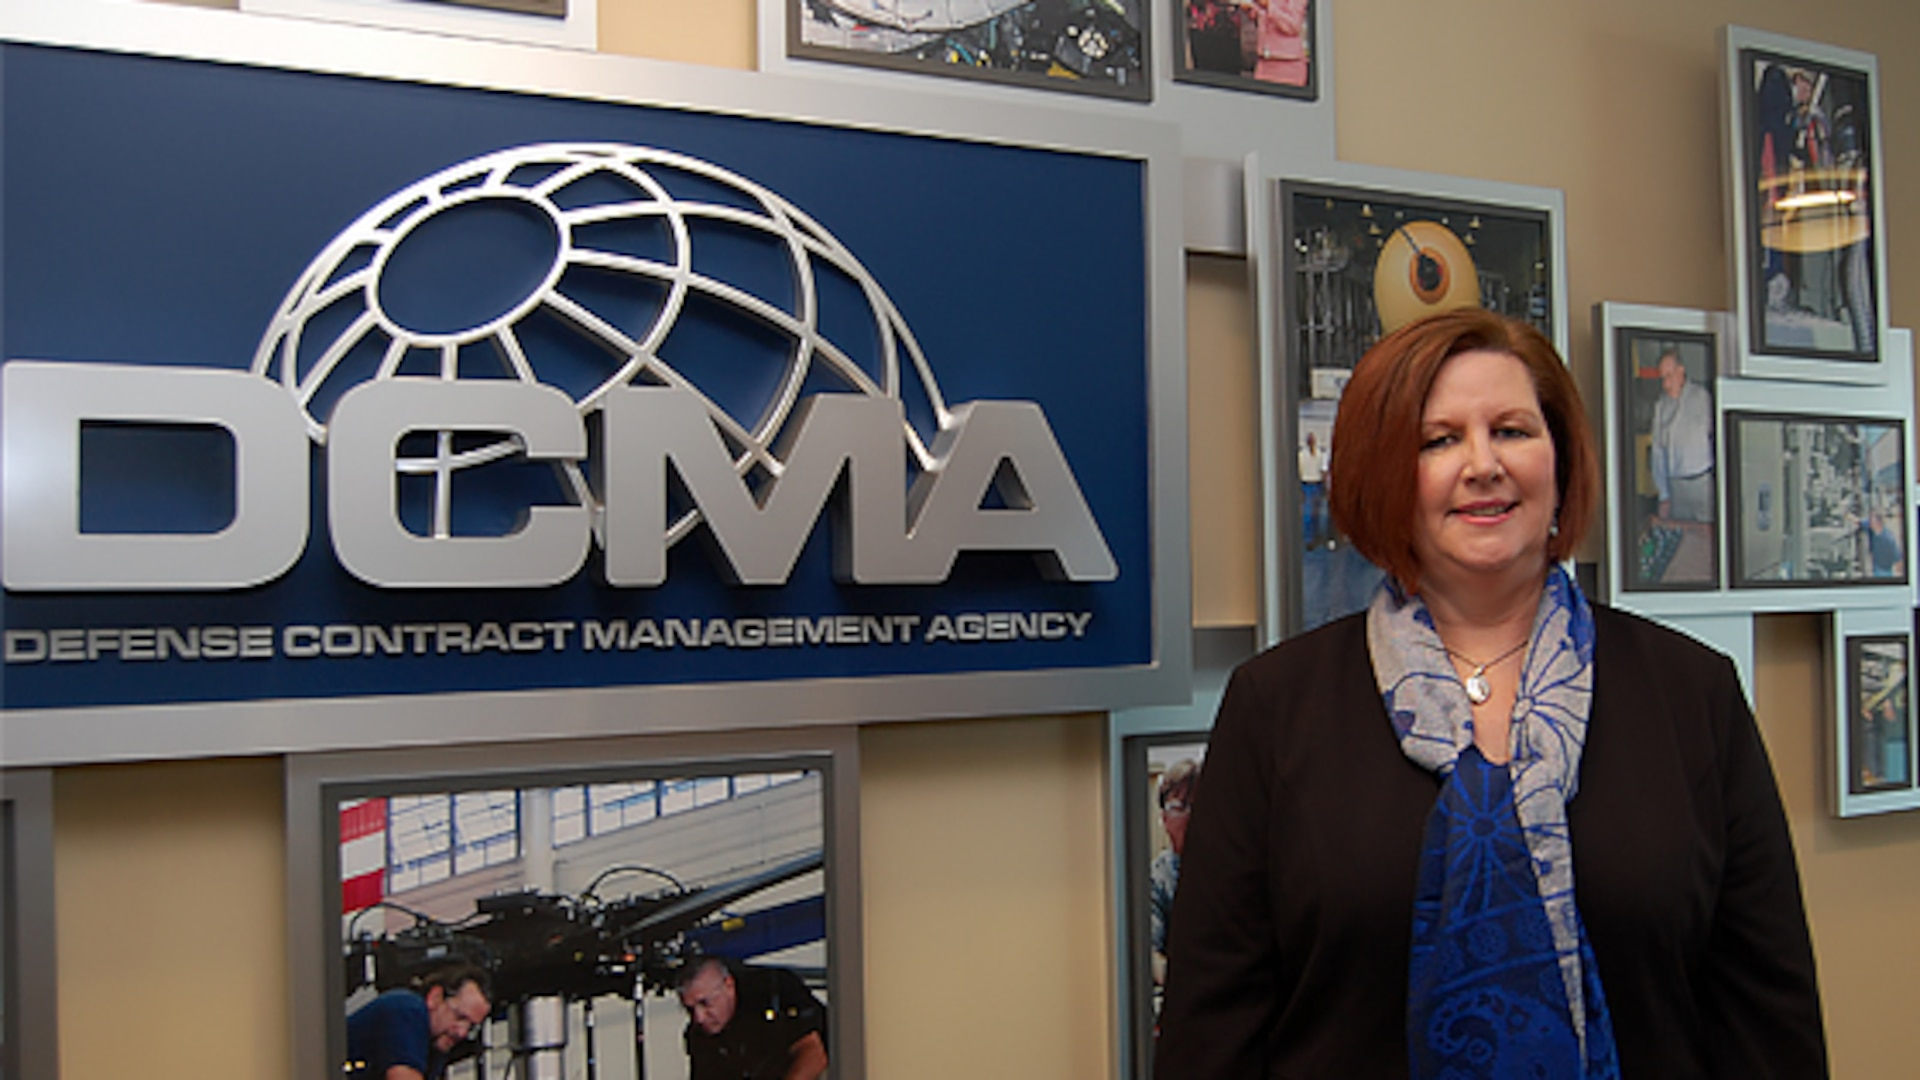 Jacqueline Meadows is a contracts and cost price supervisor at Defense Contract Management Agency Lockheed Martin Dallas. She participates on a capability board within the agency's Business Capabilities Framework. There are 11 capability boards within three overarching capabilities — primary, integrating and enabling — that incorporate multifunctional expertise across DCMA. (DCMA photo by Tonya Johnson)